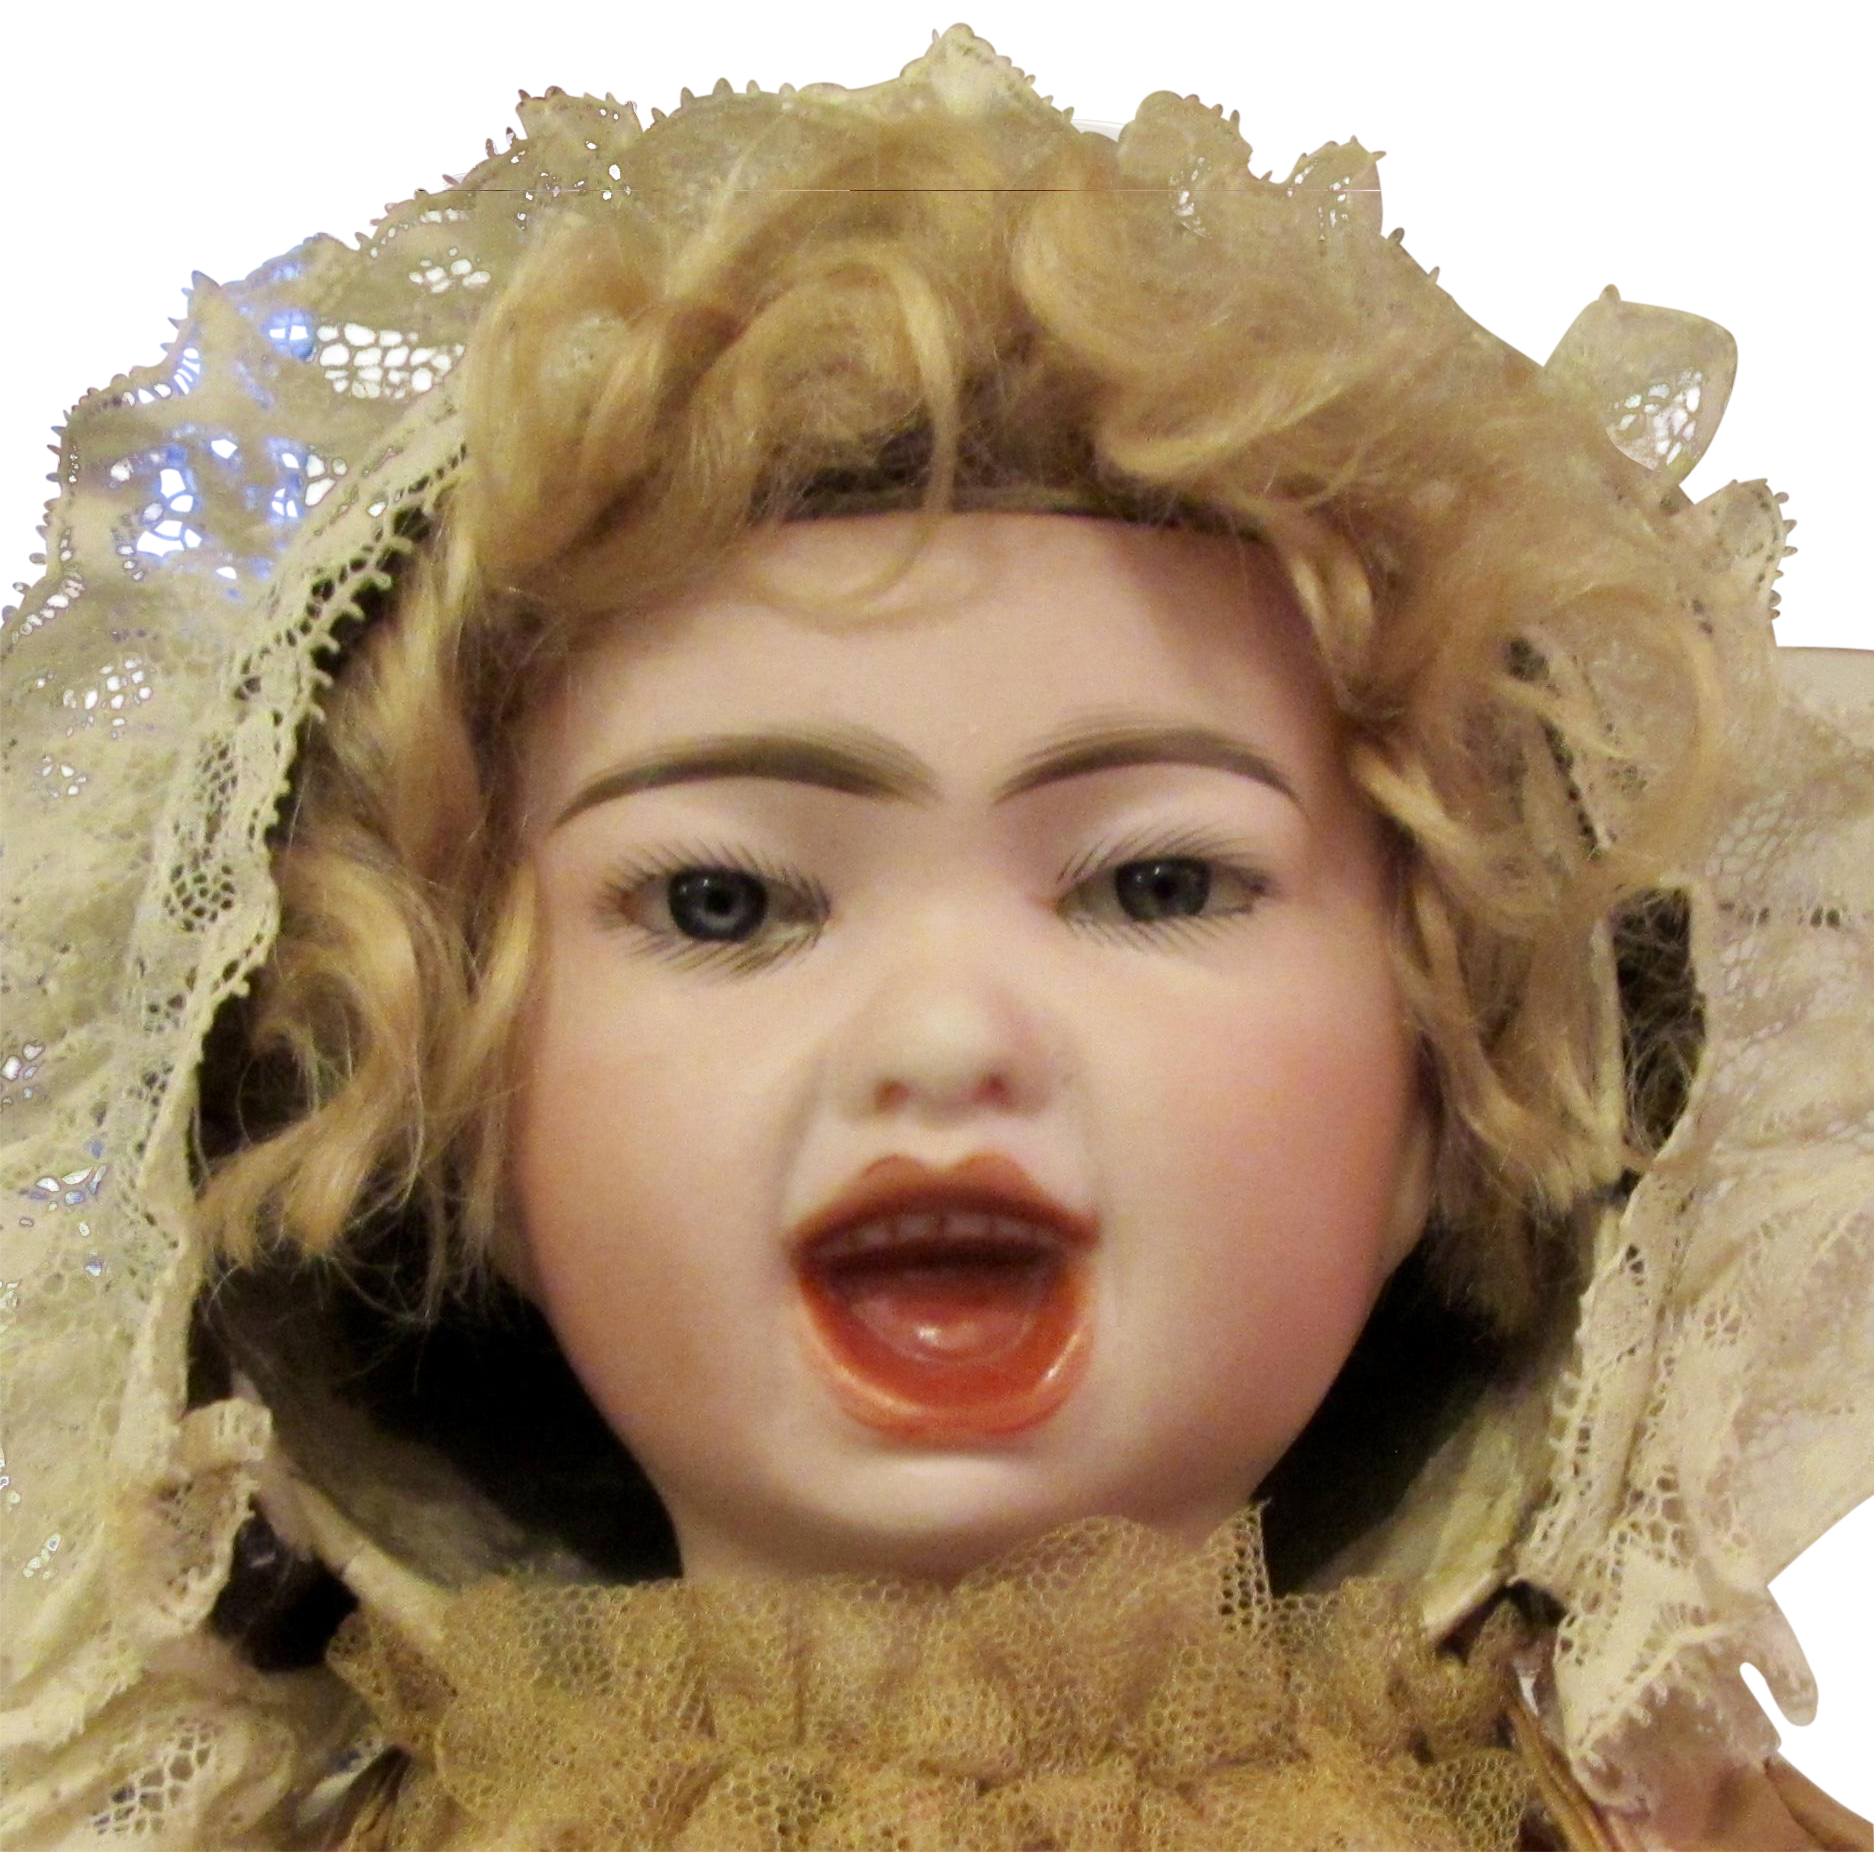 """18"""" Rare French bisque double-faced bebe by Emile Jumeau from """"Series Fantastique""""."""